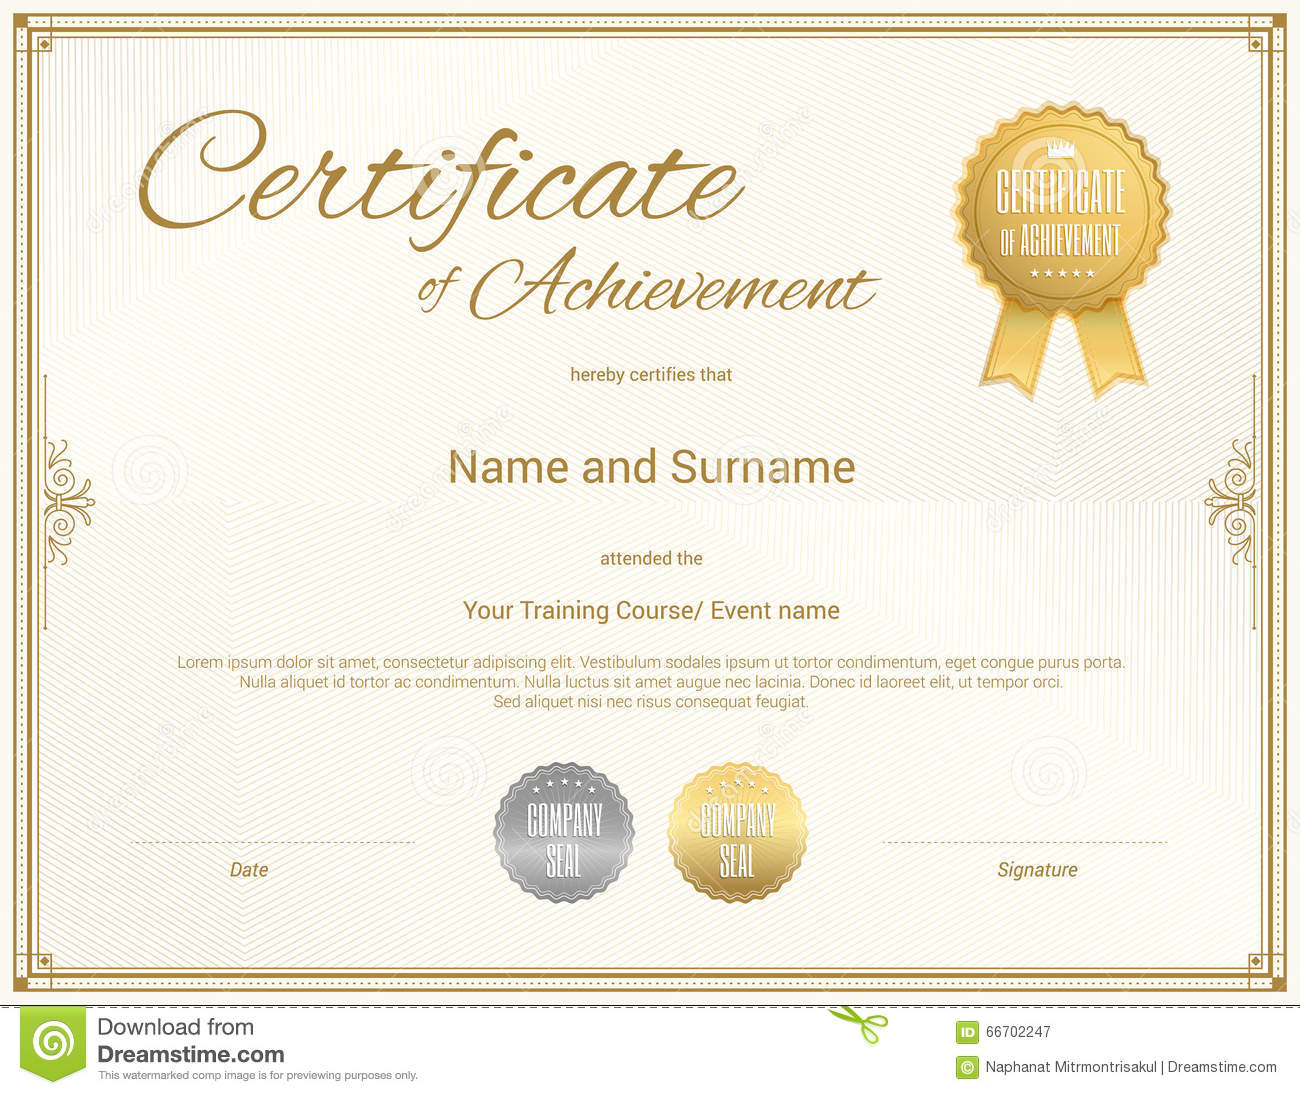 Certificate Of Achievement Template In Vector Vector Image – Template Certificate of Achievement